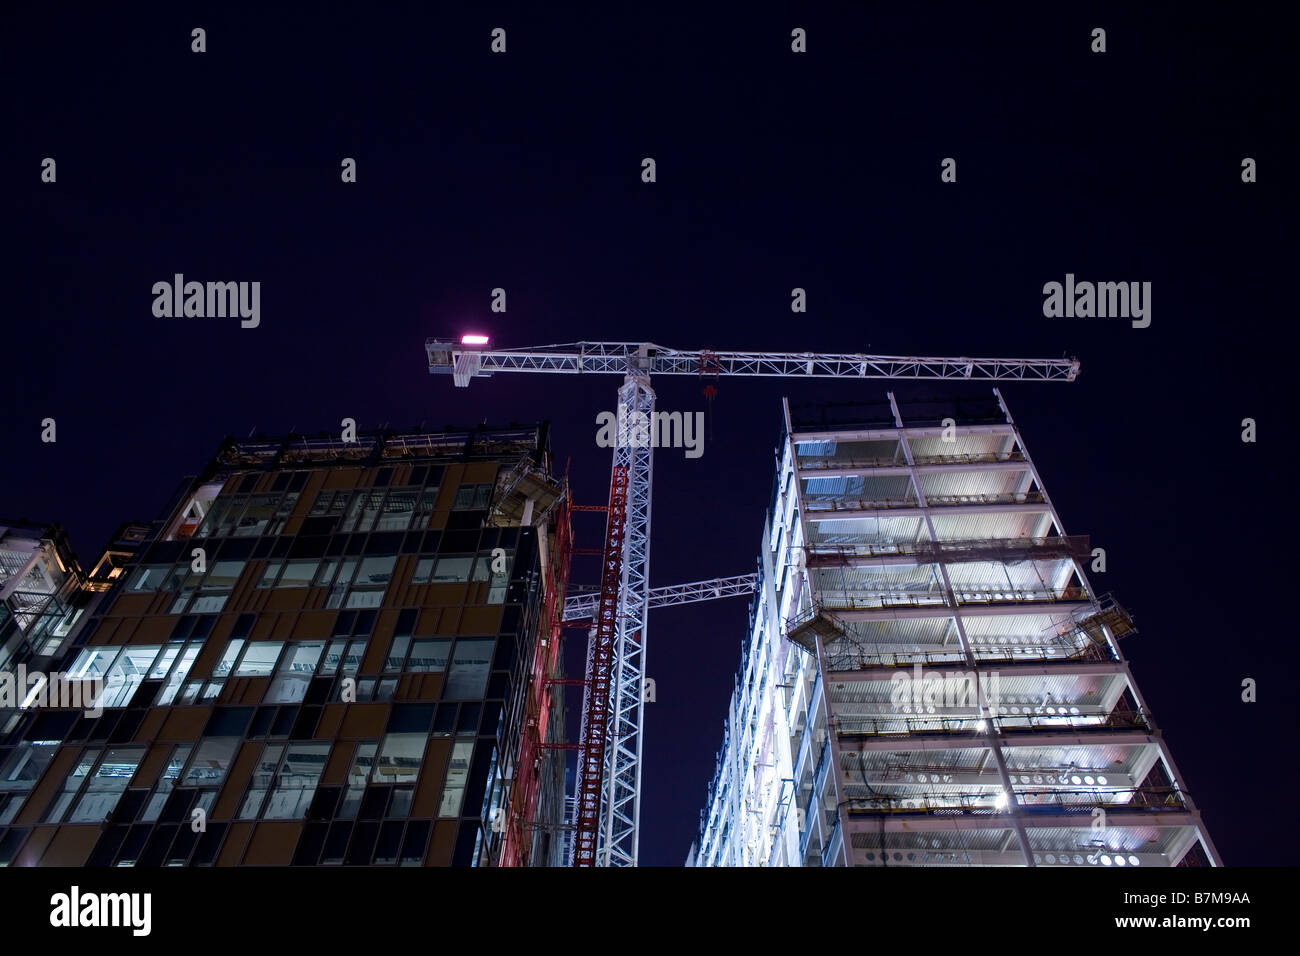 A crane stands tall between two buildings on a construction site at night in south-east London, United Kingdom. Stock Photo